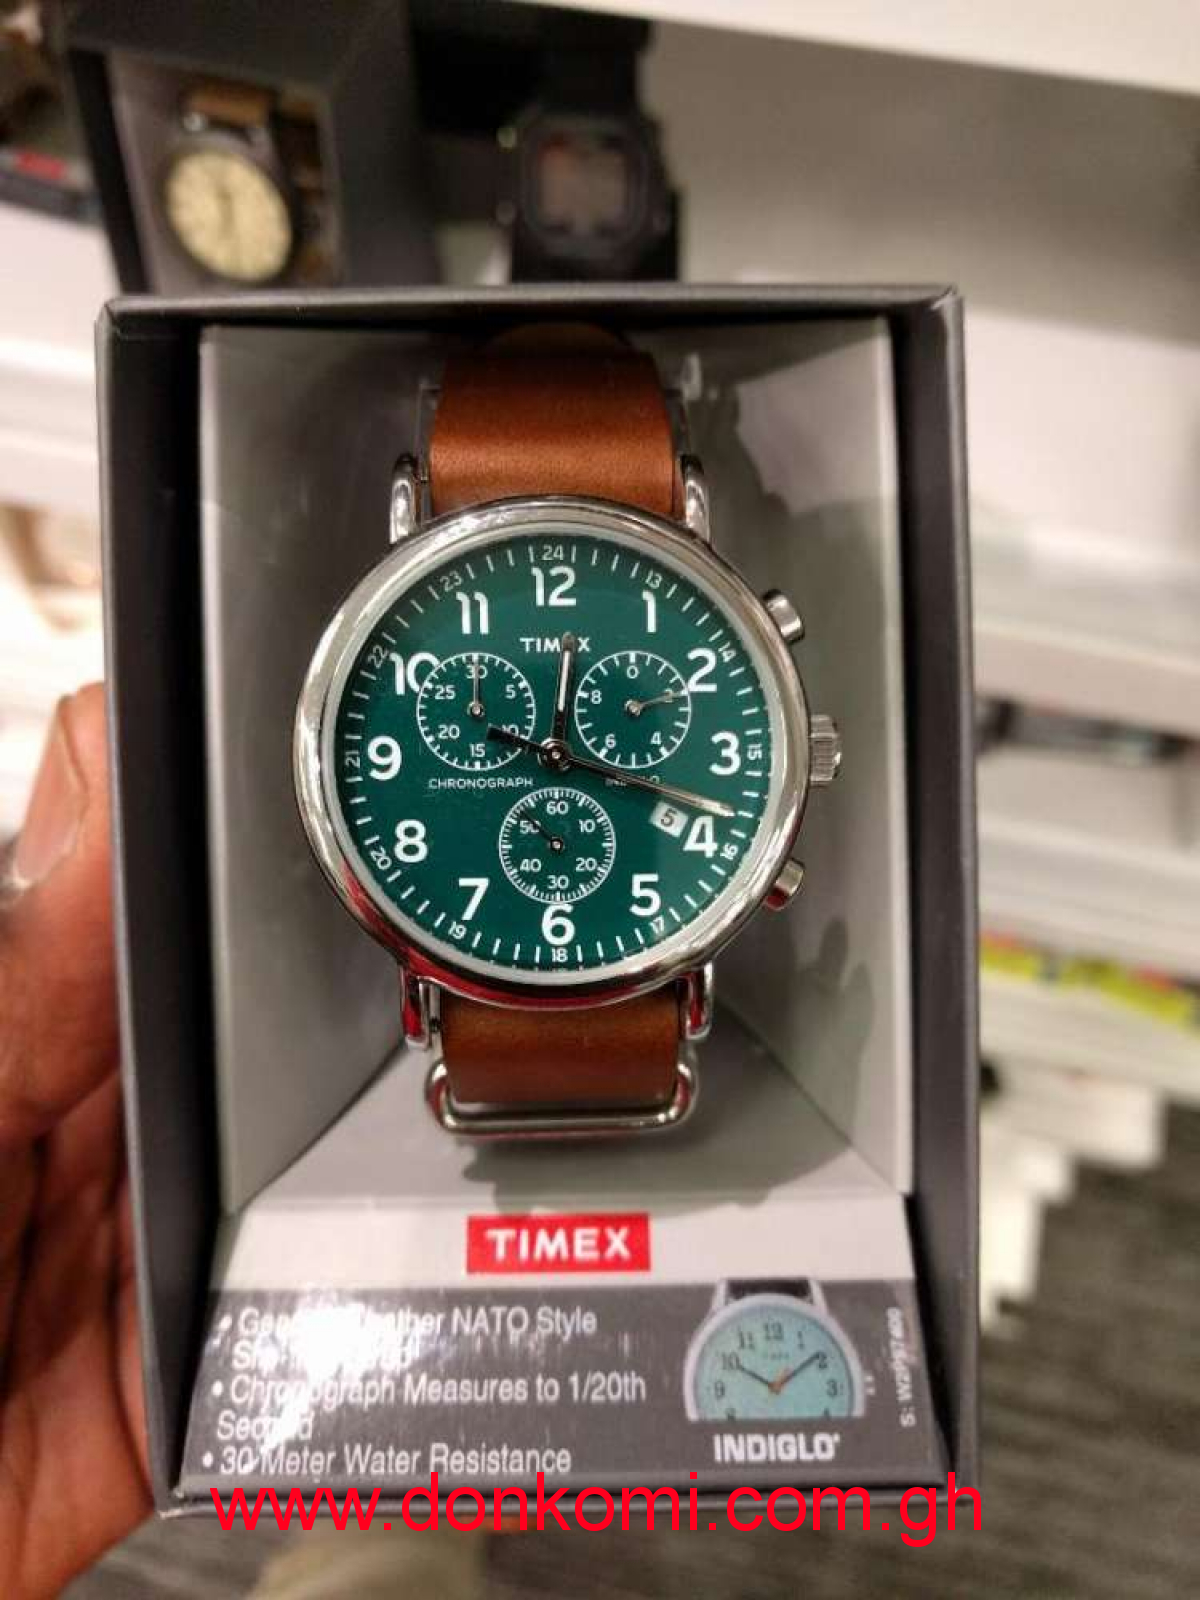 Original Timex Watches from USA